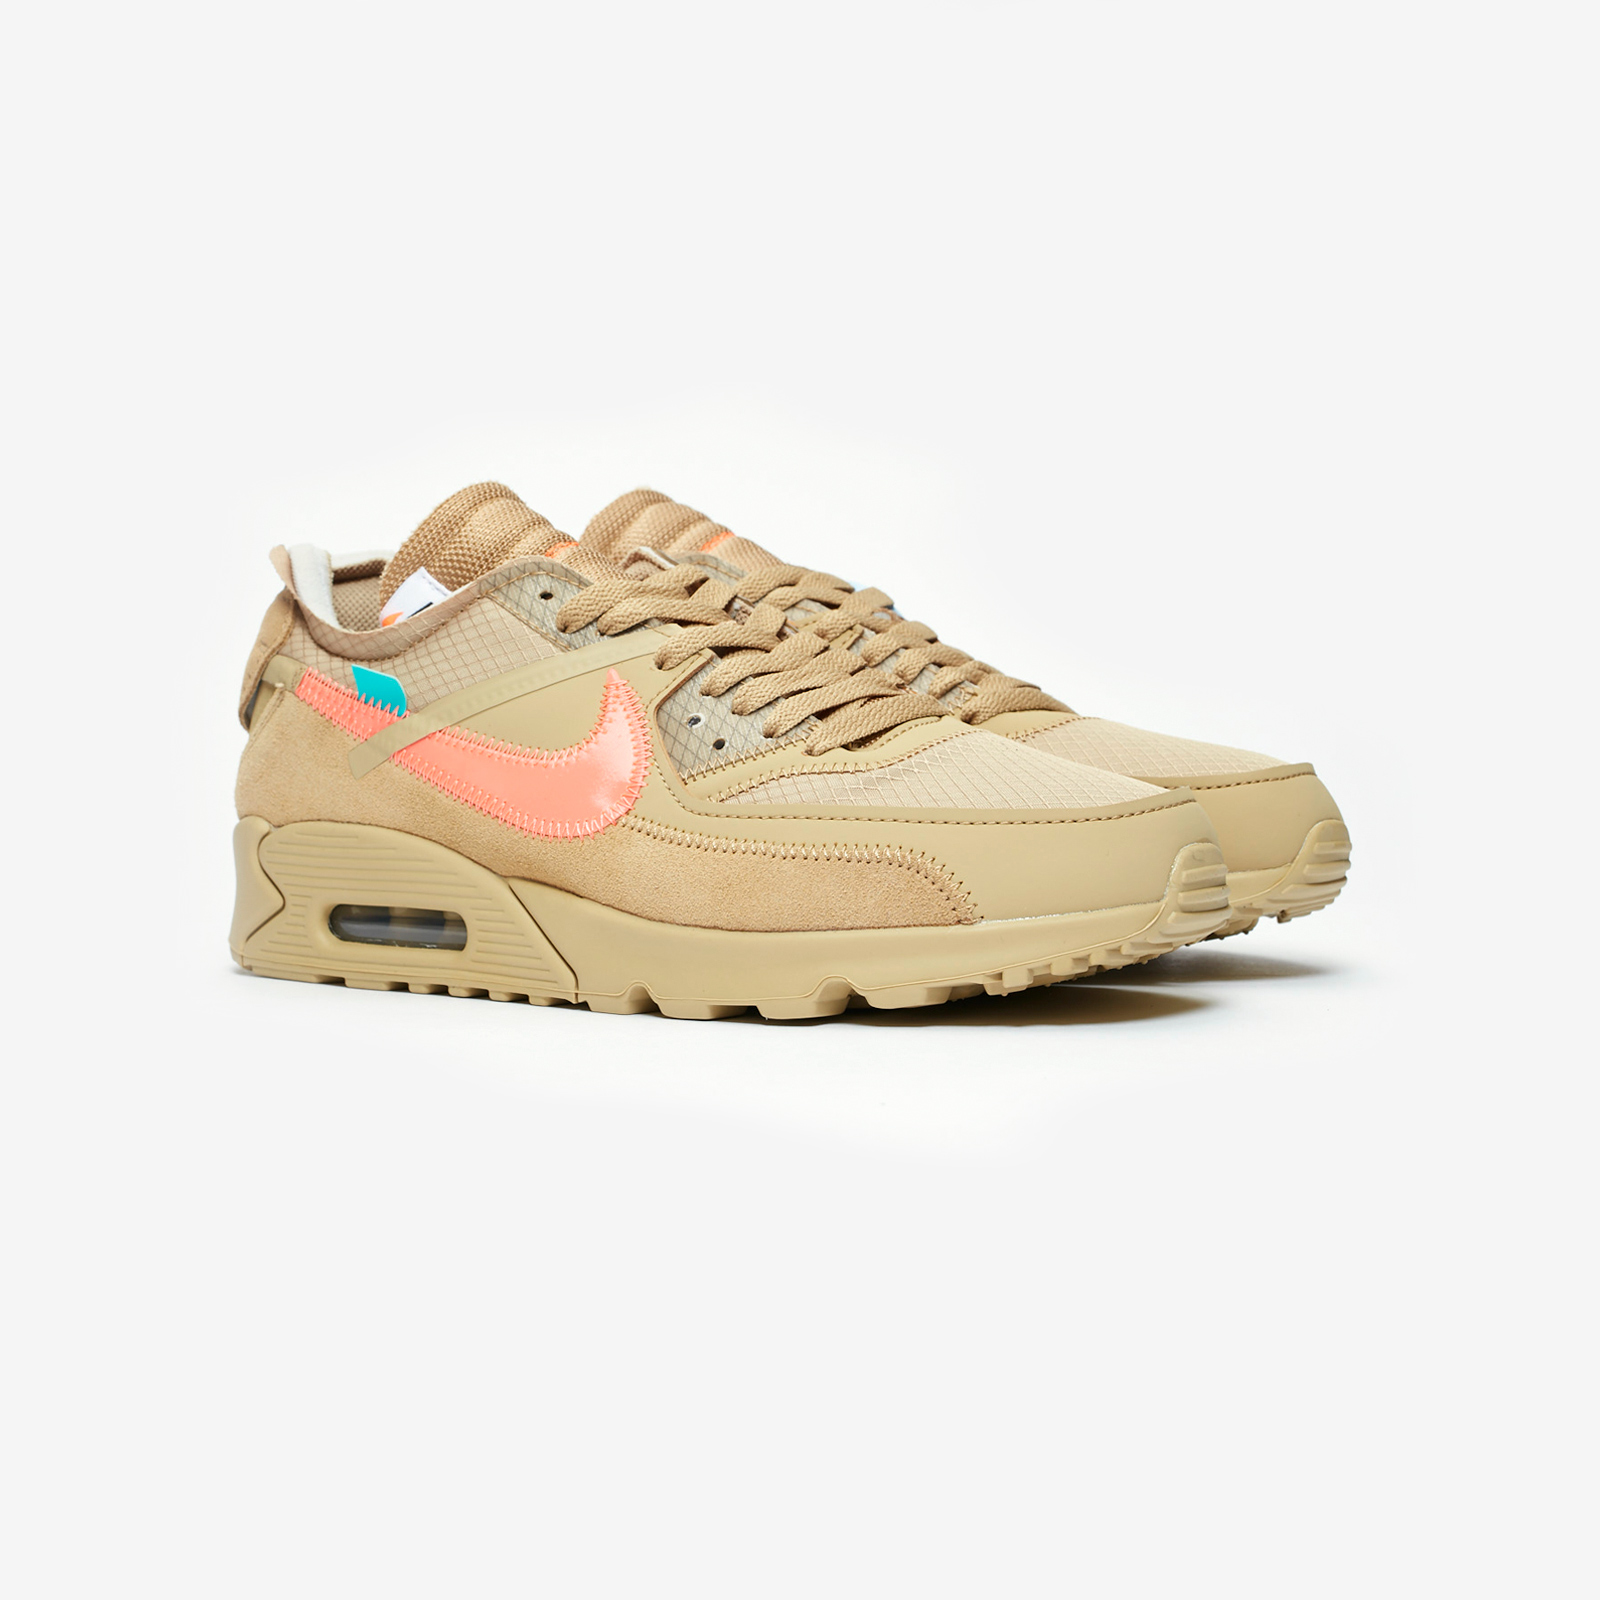 nouveau style e3f76 d33dc Nike The 10: Air Max 90 - Aa7293-200 - Sneakersnstuff ...